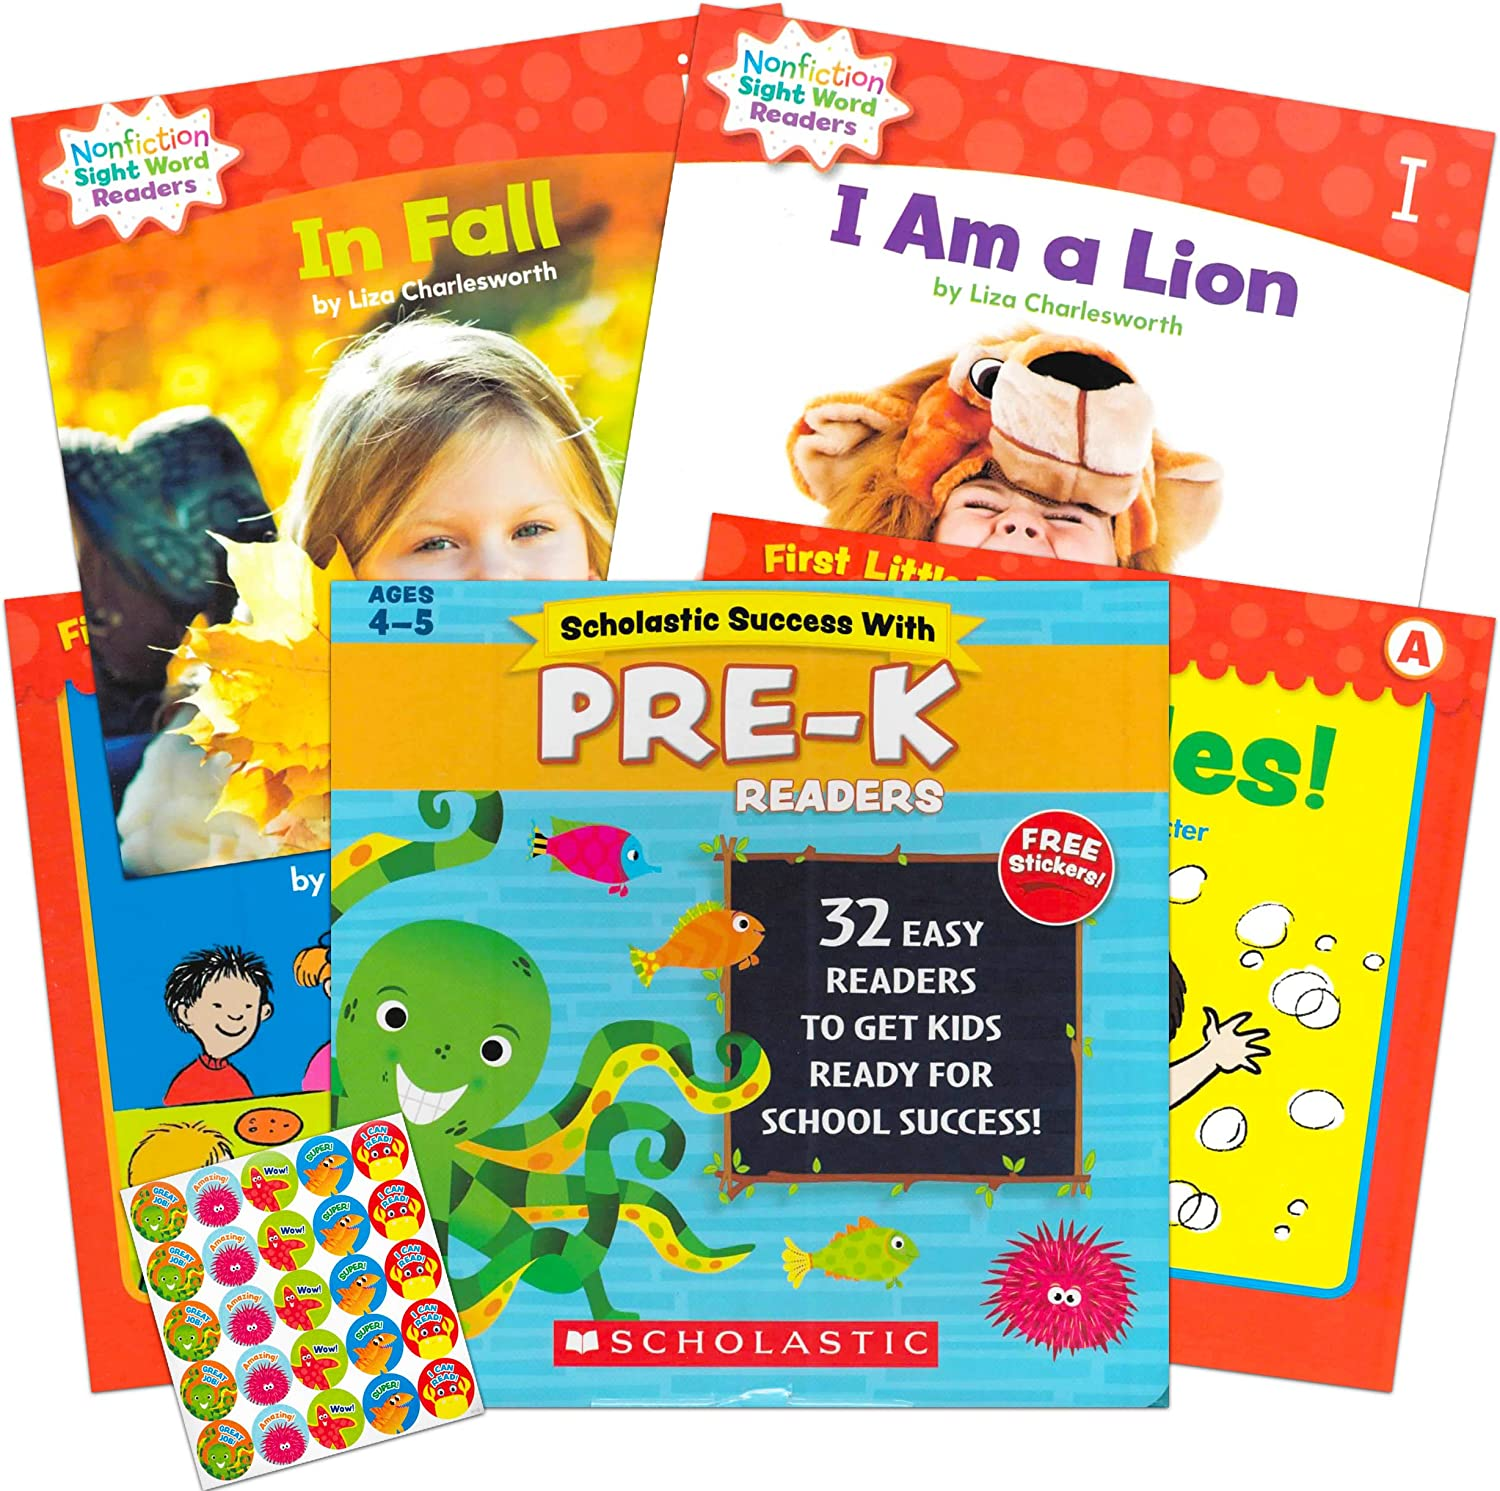 Scholastic Pre-K Reading Books Age 4-5 ~ 32 Pack Leveled Readers for Preschoolers with Reward Stickers